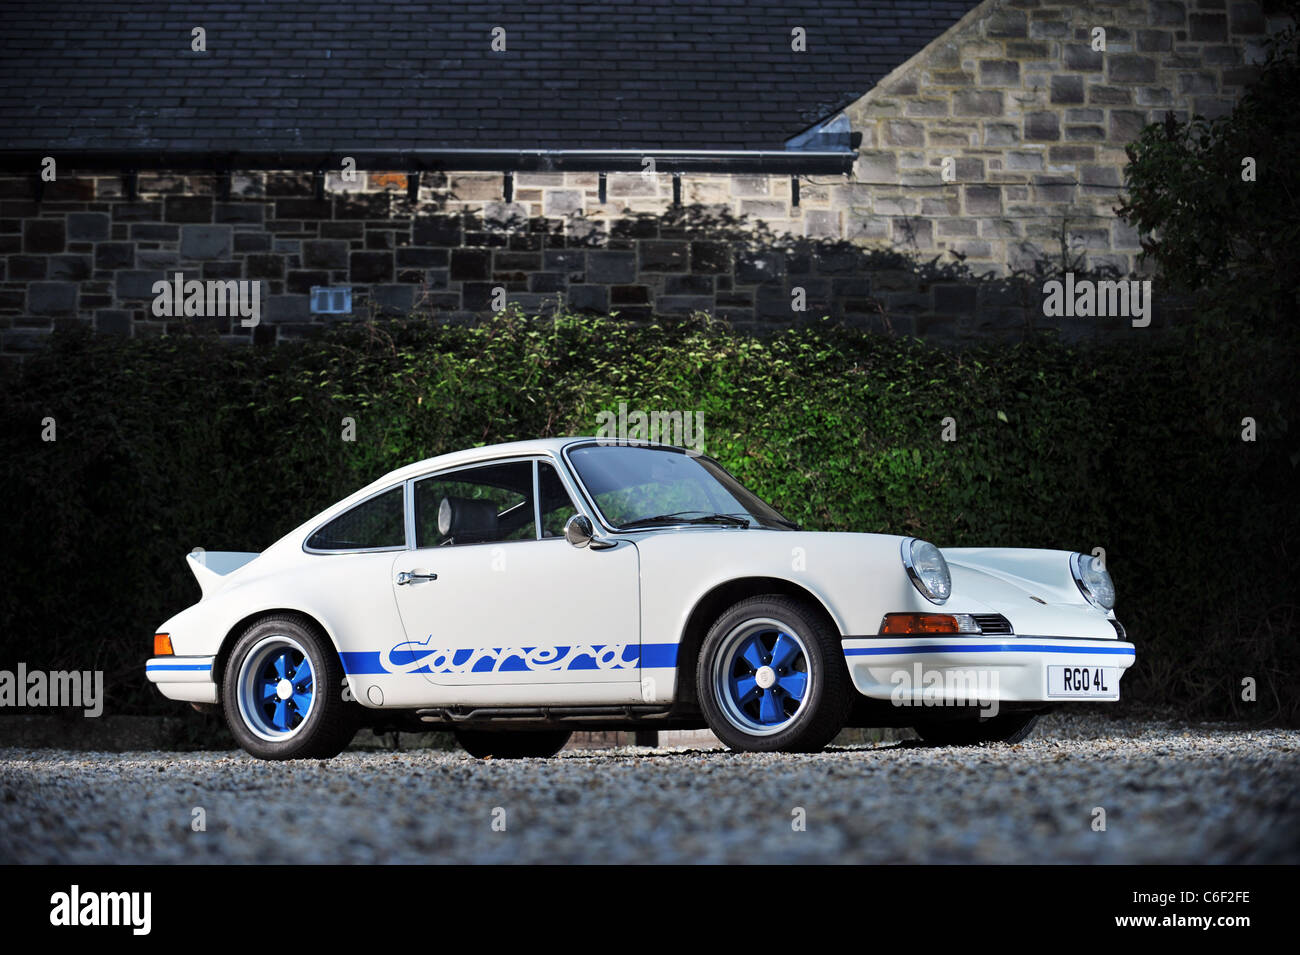 1973 porsche 911 carrera rs 27 litre lightweight coupe stock 1973 porsche 911 carrera rs 27 litre lightweight coupe vanachro Choice Image